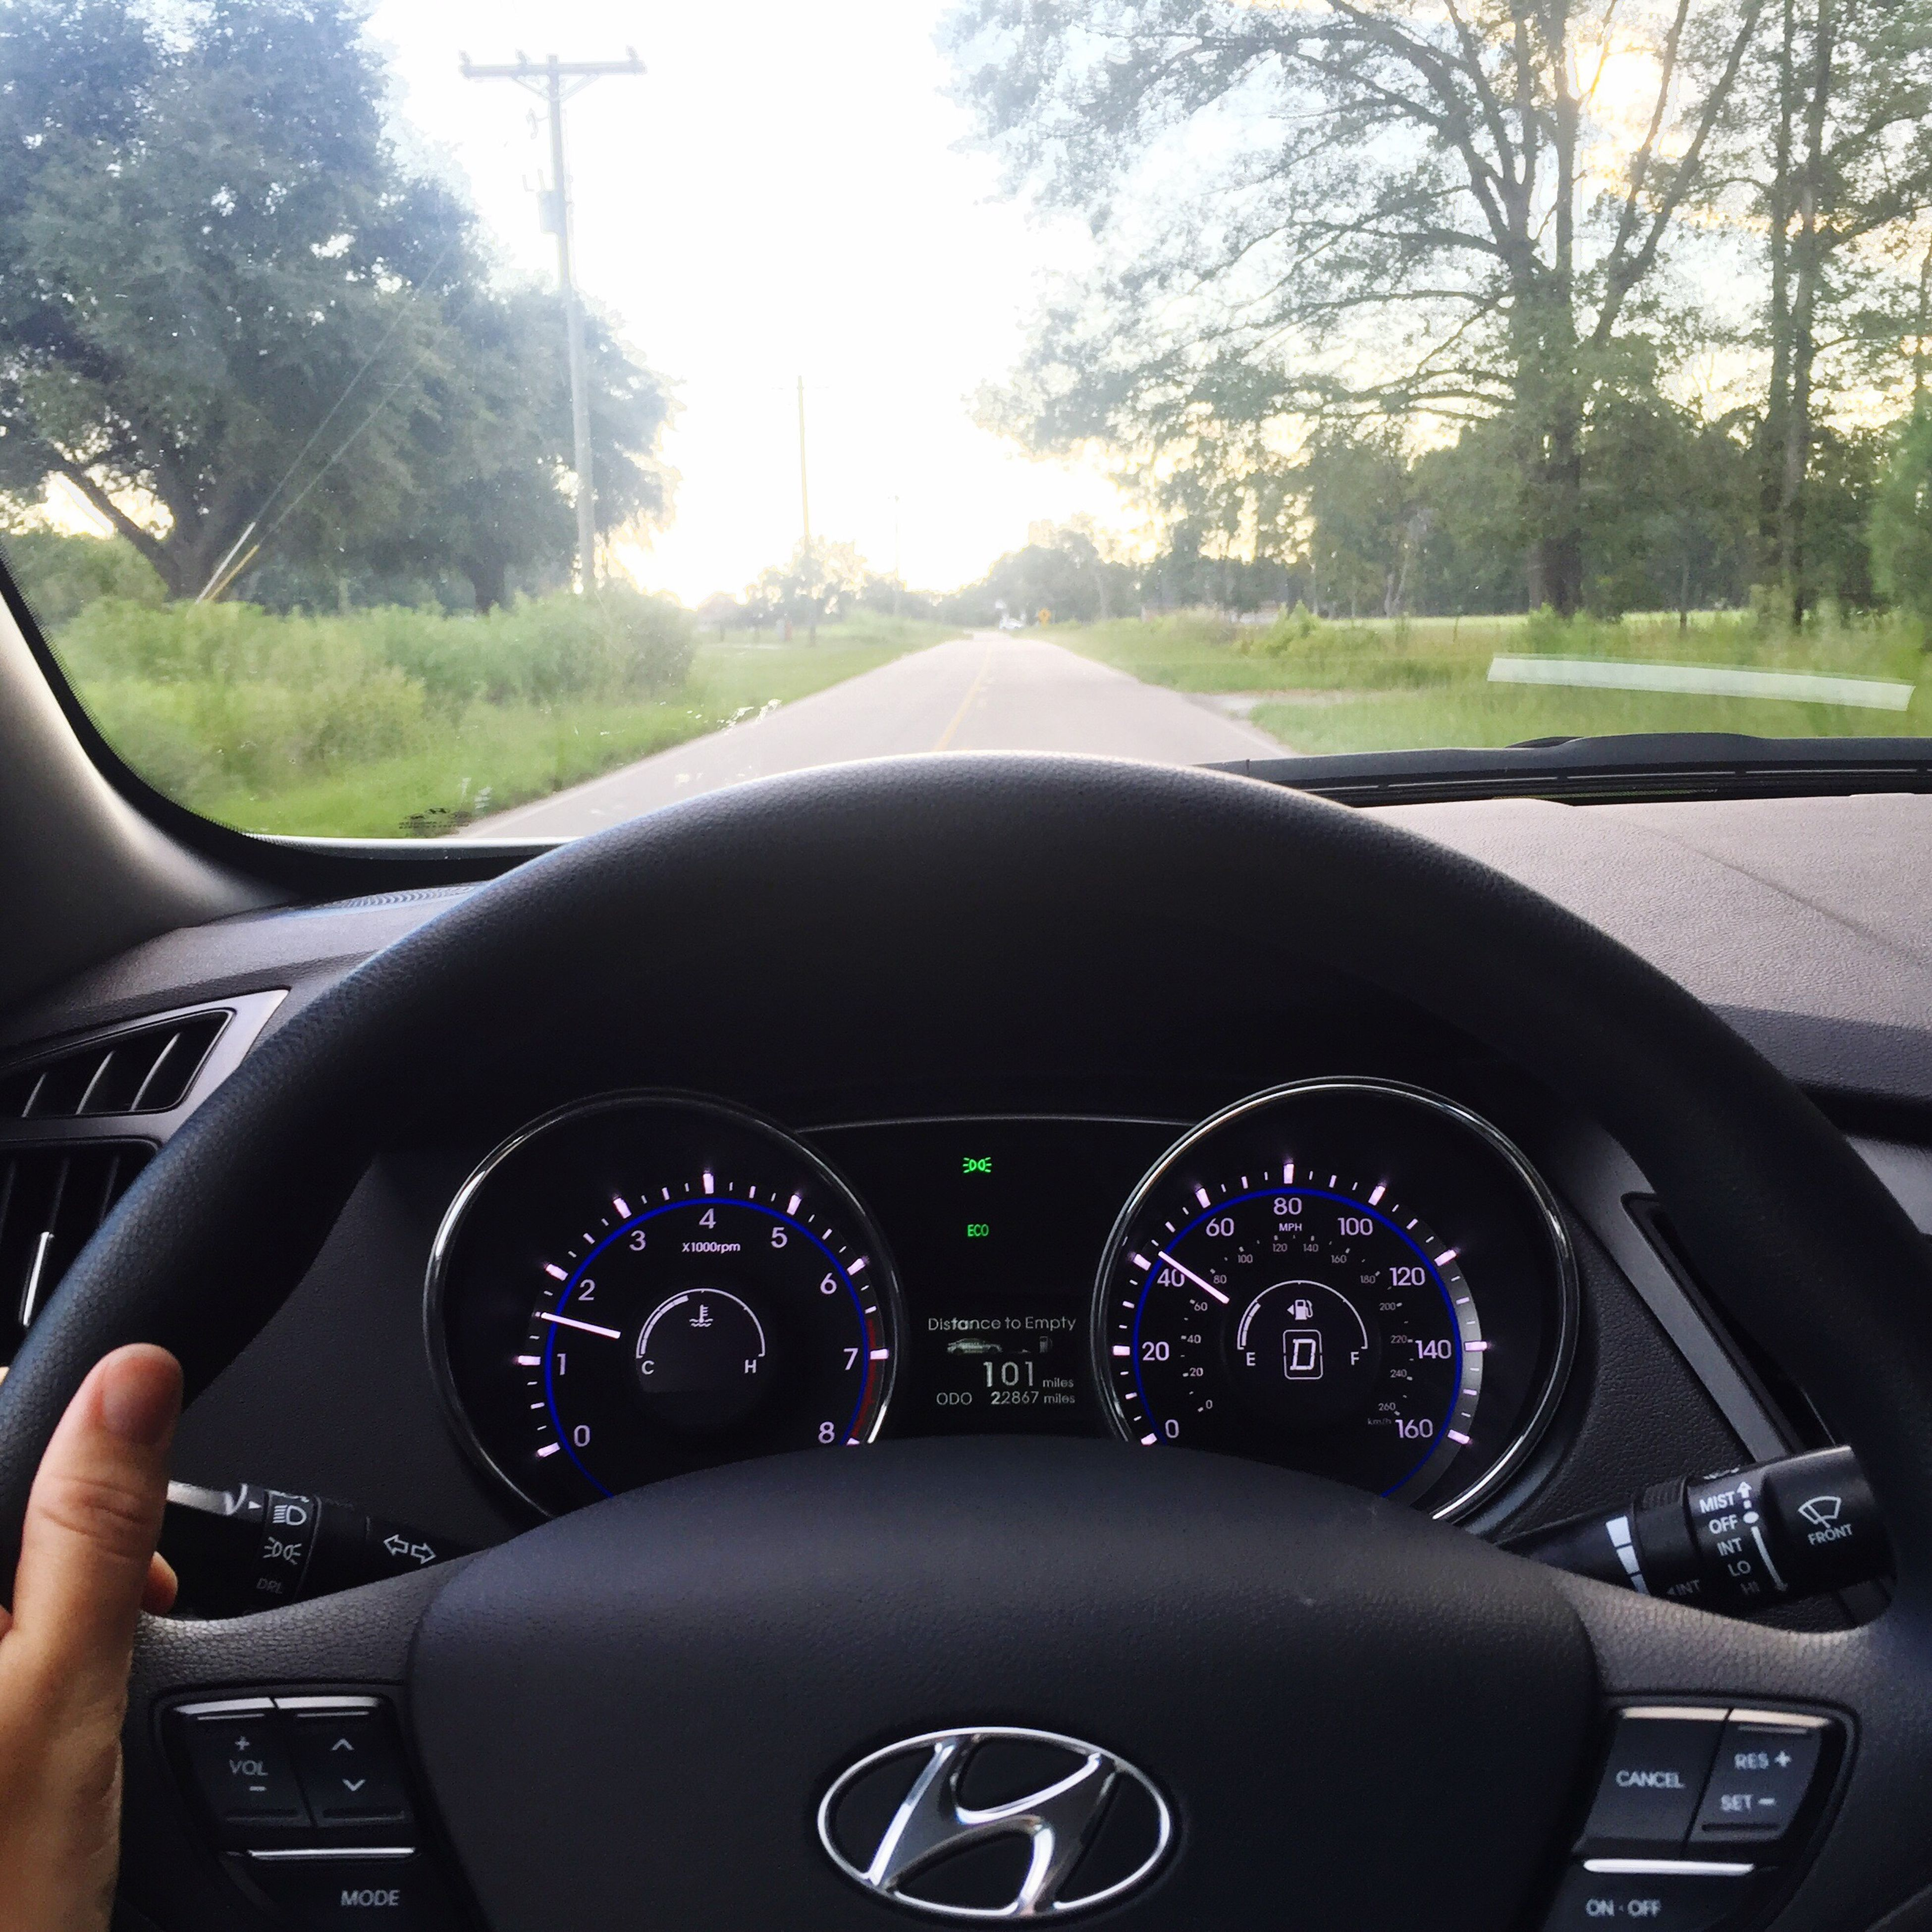 transportation, land vehicle, mode of transport, vehicle interior, car interior, part of, windshield, cropped, close-up, dashboard, side-view mirror, steering wheel, road, tree, journey, personal perspective, vehicle part, driving, day, speedometer, focus on foreground, windscreen, rear view mirror